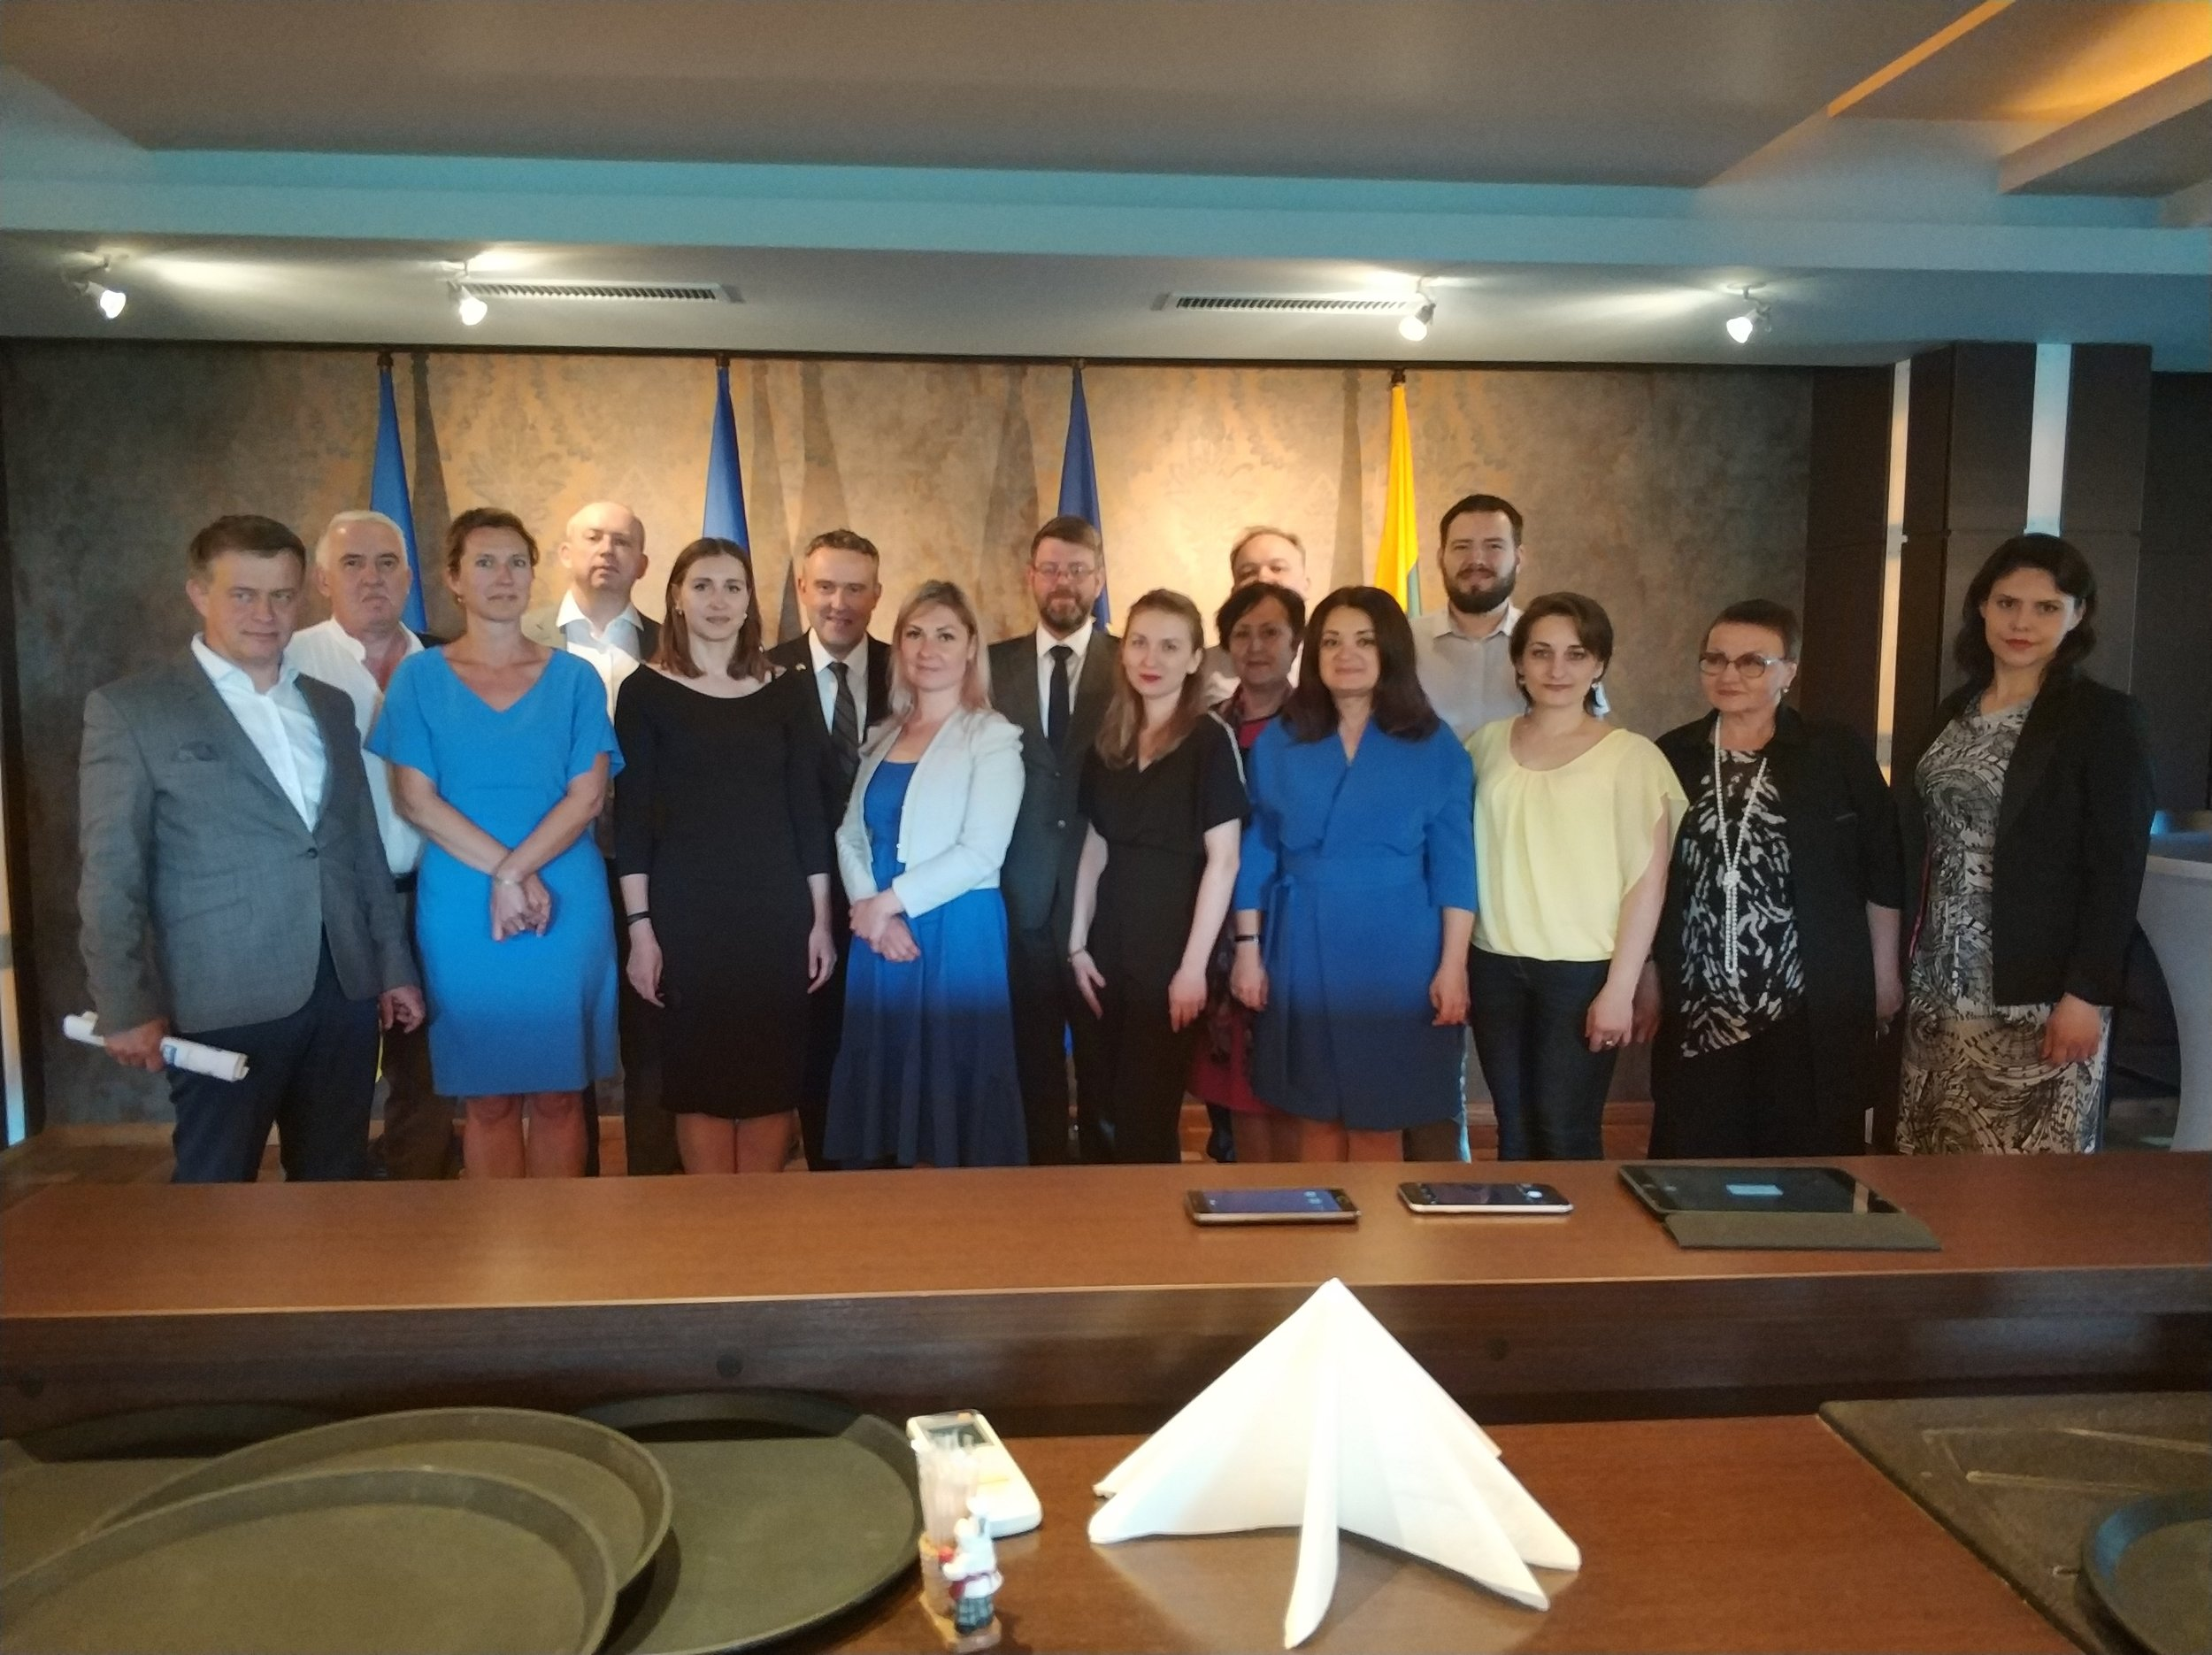 The team of contributors with HE Luc Jacobs, the Ambassador of Belgium to Ukraine, HE Marius Janukonis, the Ambassador of Lithuania to Ukraine, and attendees of the event at C3EU public presentation at the Embassy of Lithuania to Ukraine, Kyiv, Ukraine. June 7, 2018.